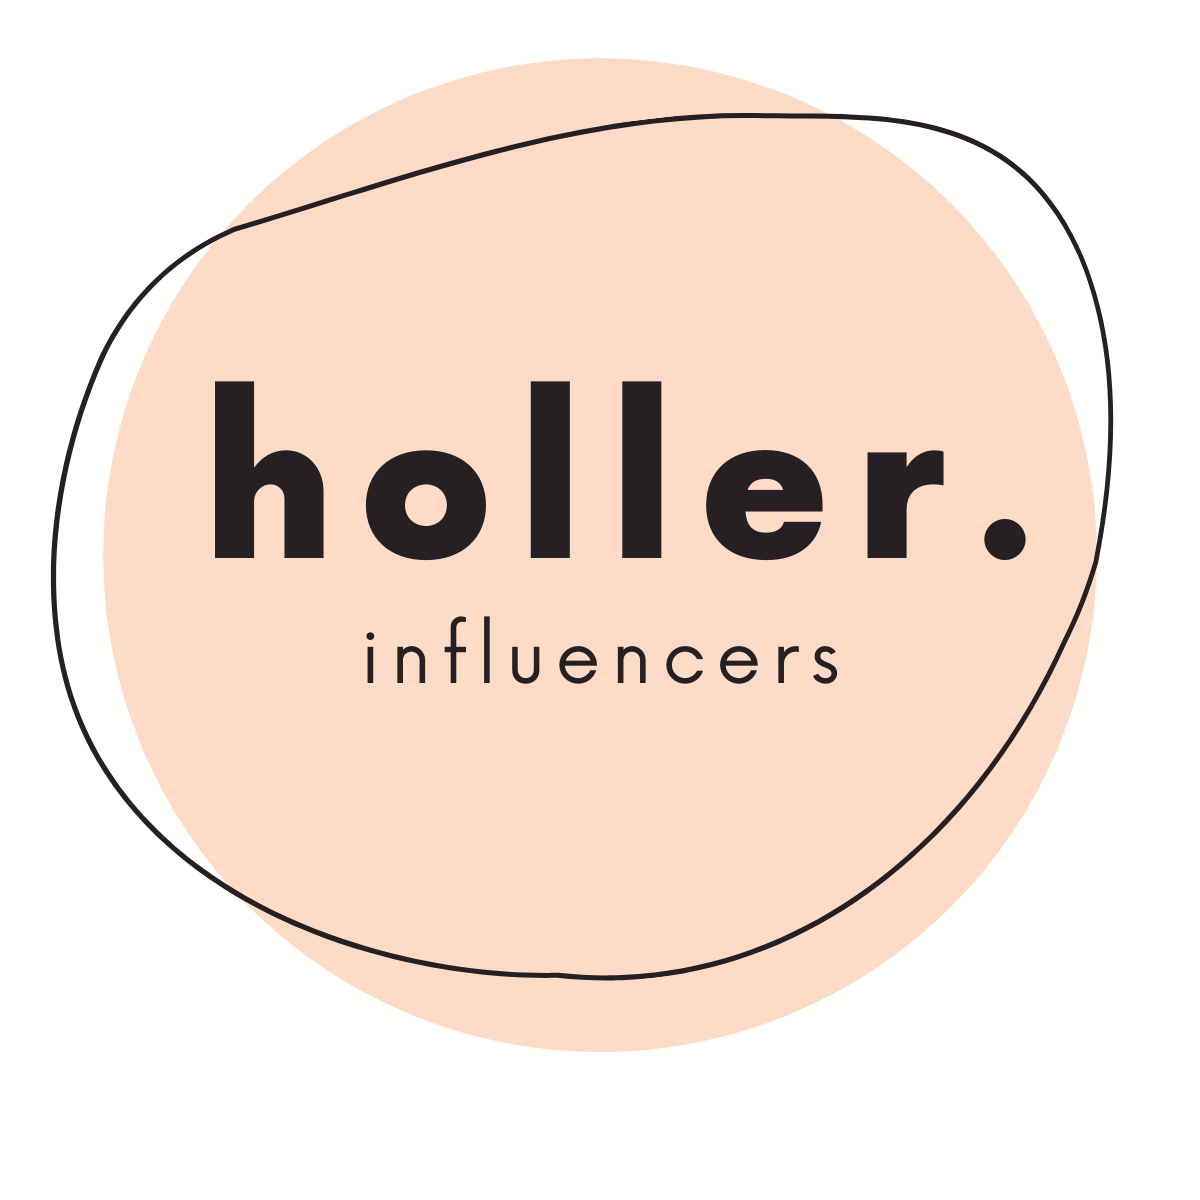 holler. Influencers